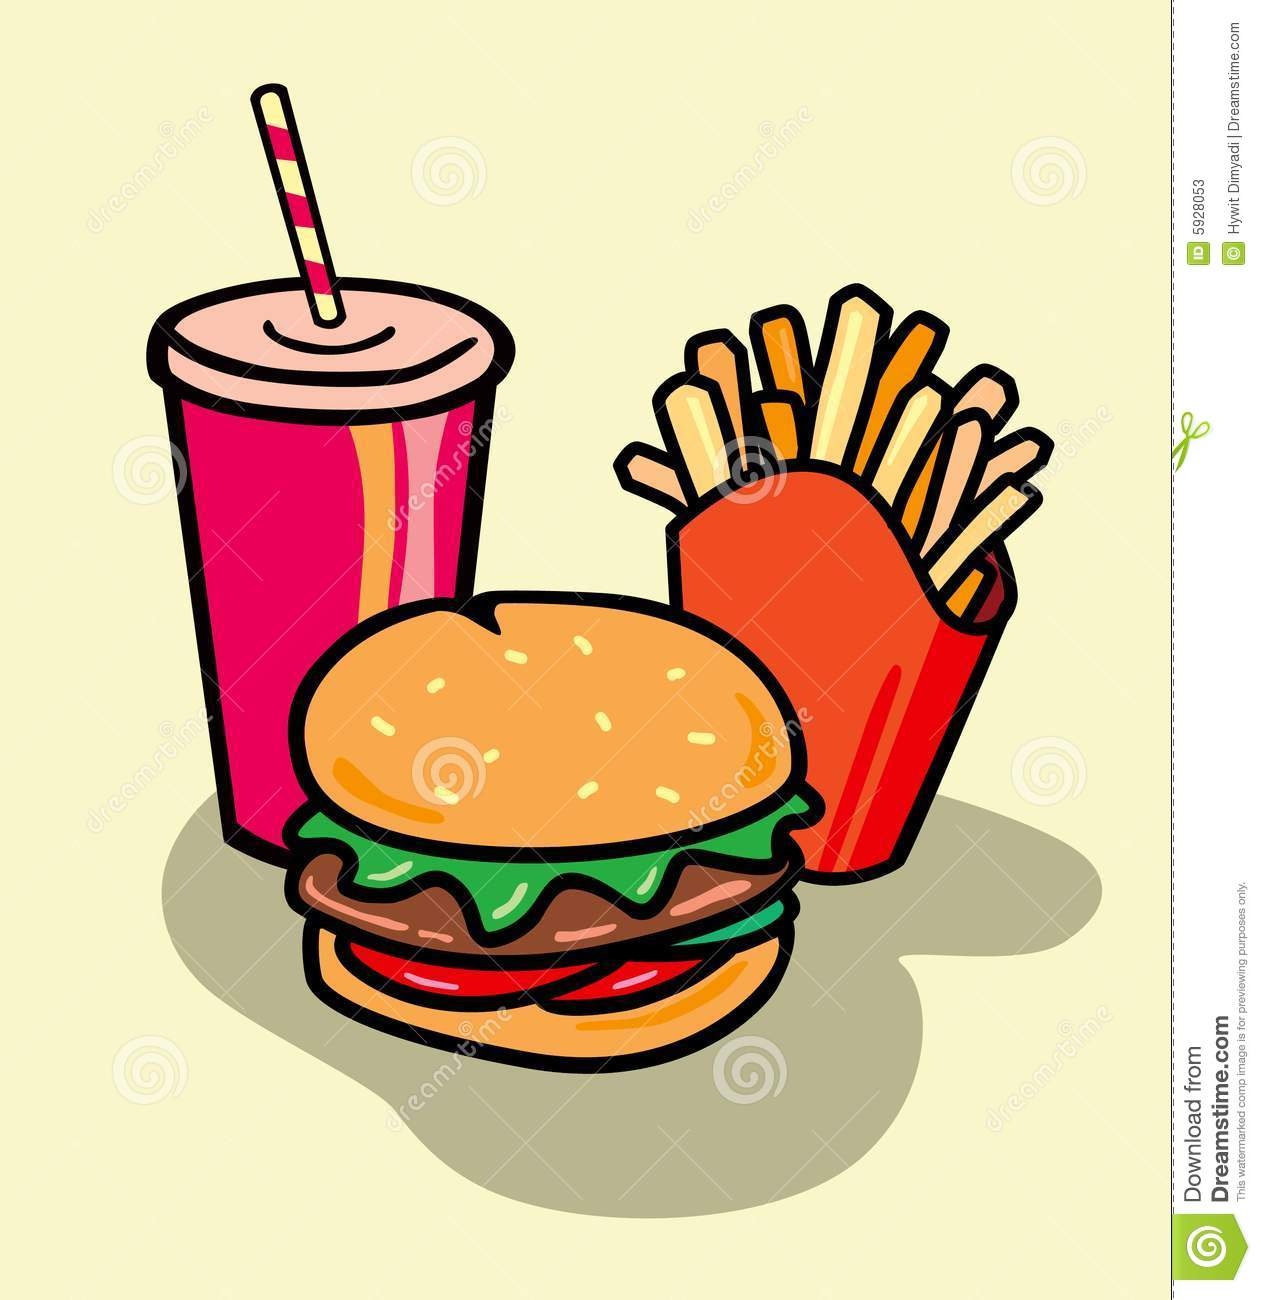 Hamburger, Frech fries and Soda in Vector format.